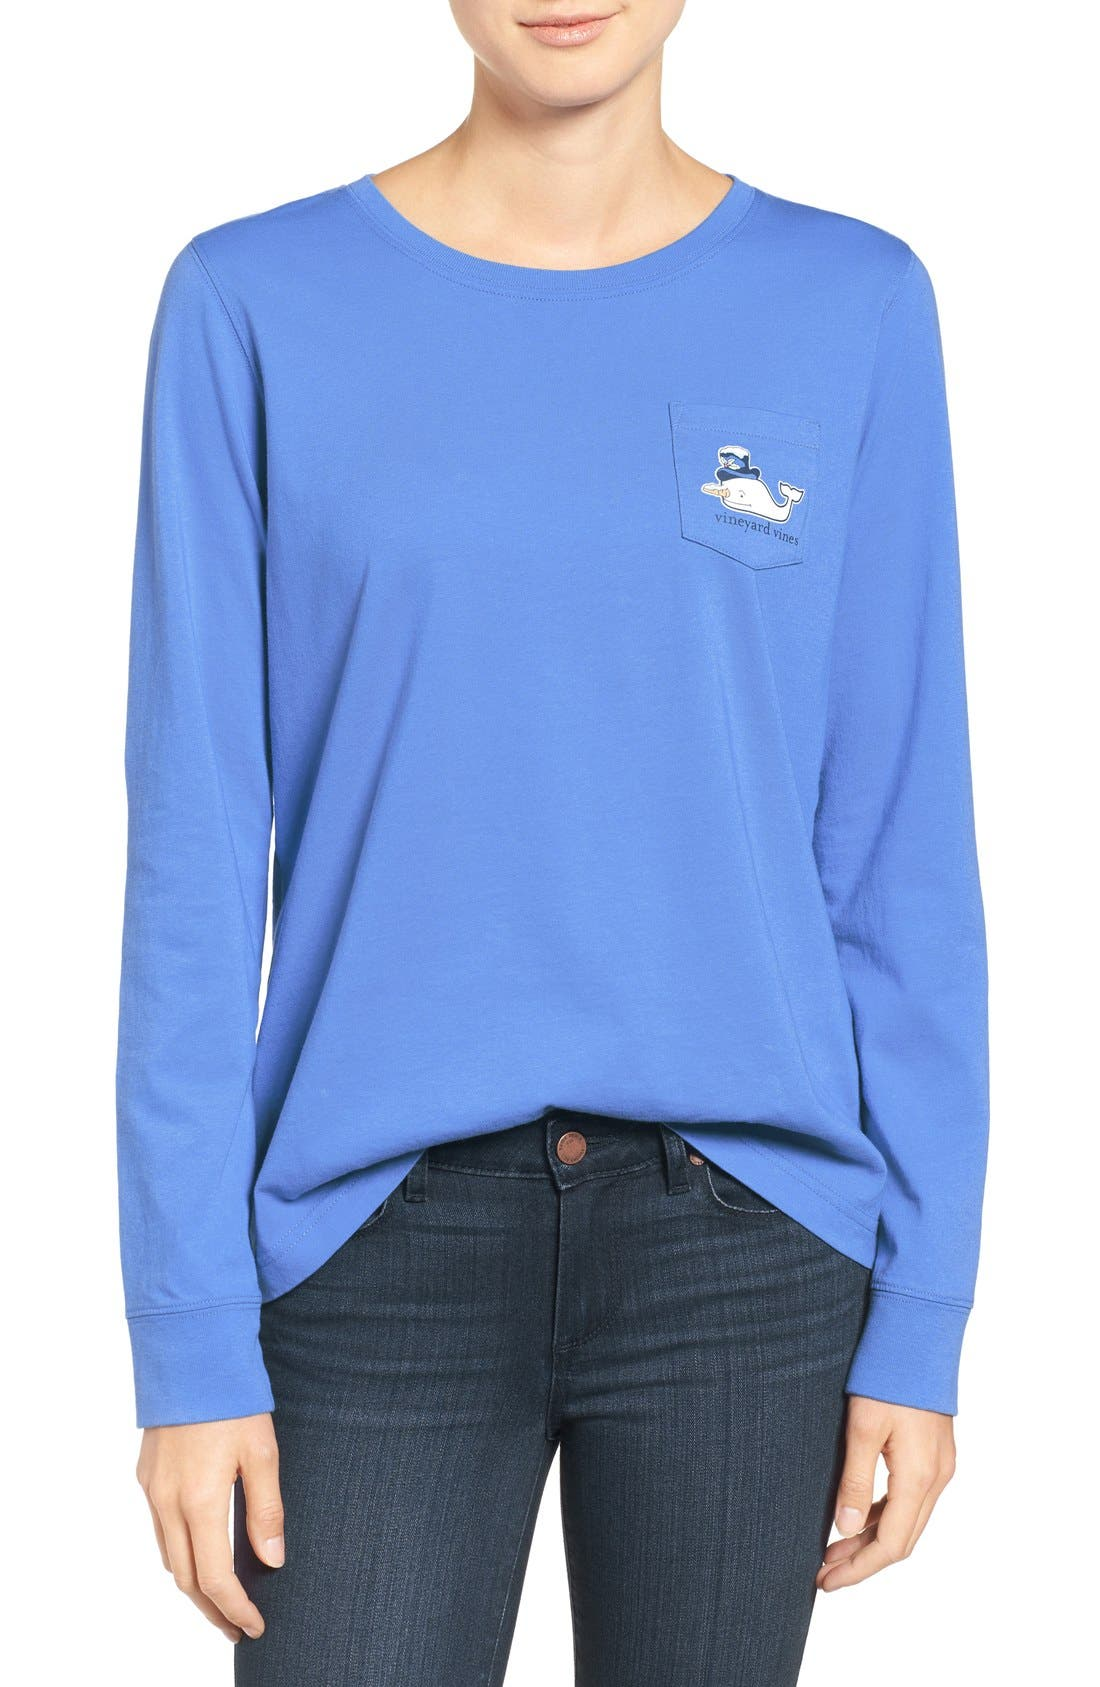 Alternate Image 1 Selected - Vineyard Vines Snowman Whale Cotton Tee